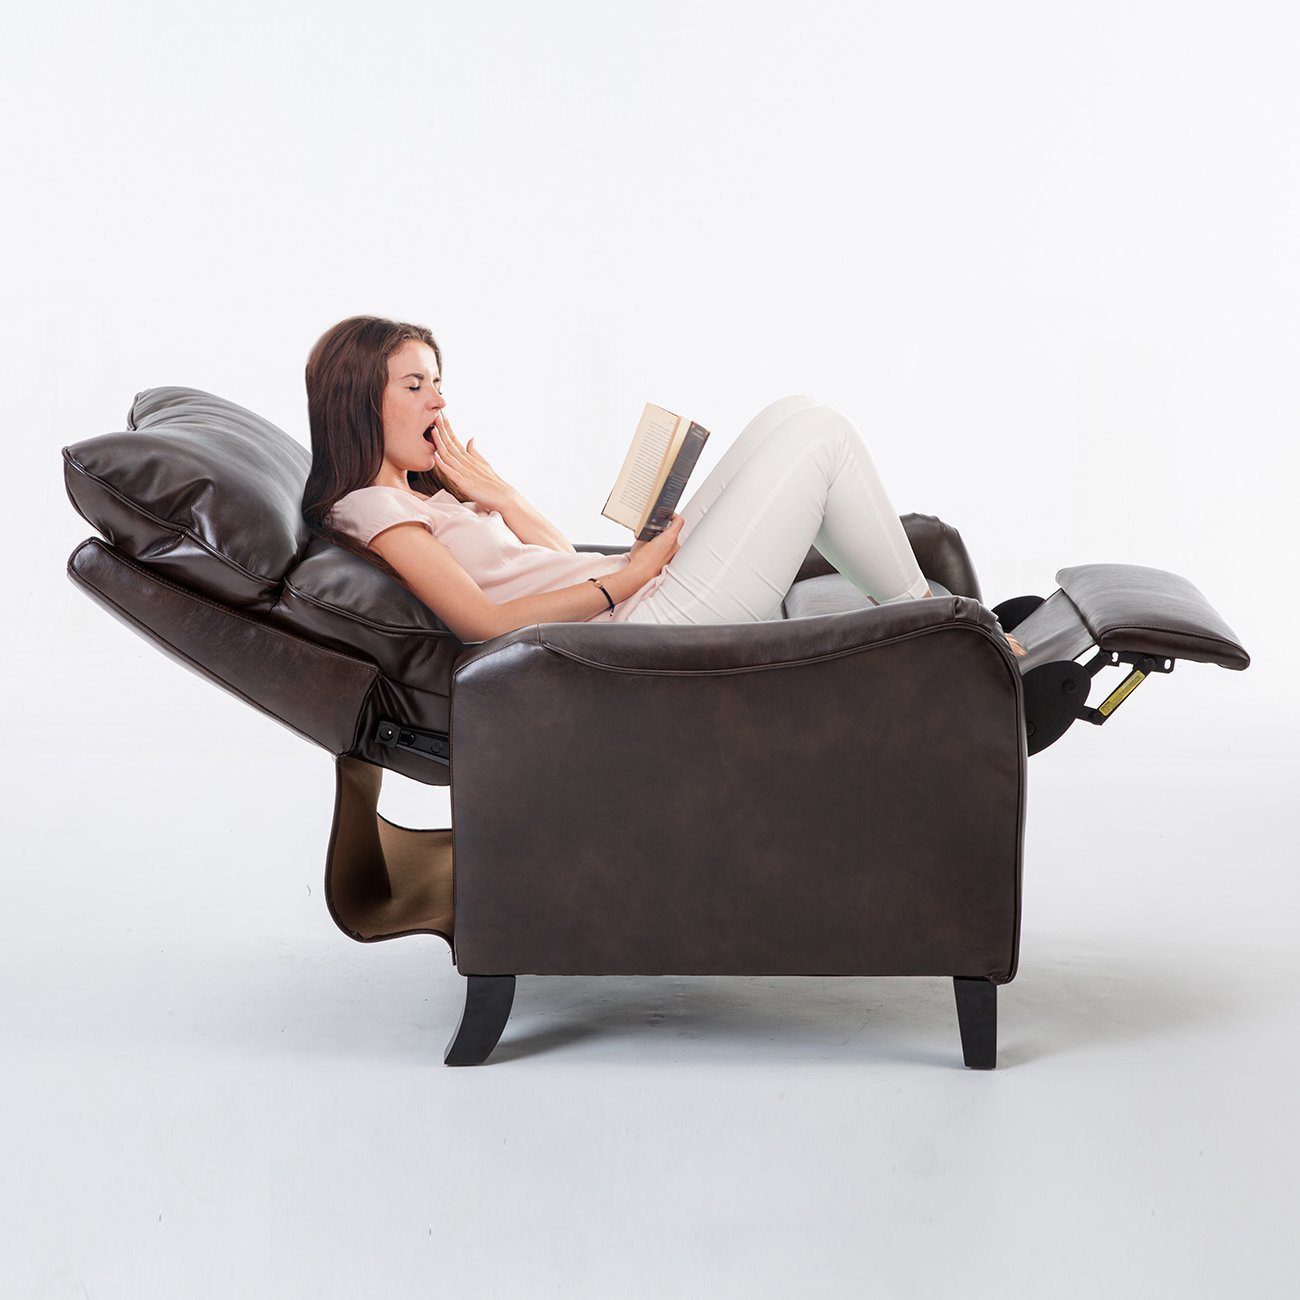 BONZY English Roll Arm Pushback Recliner - Taupe